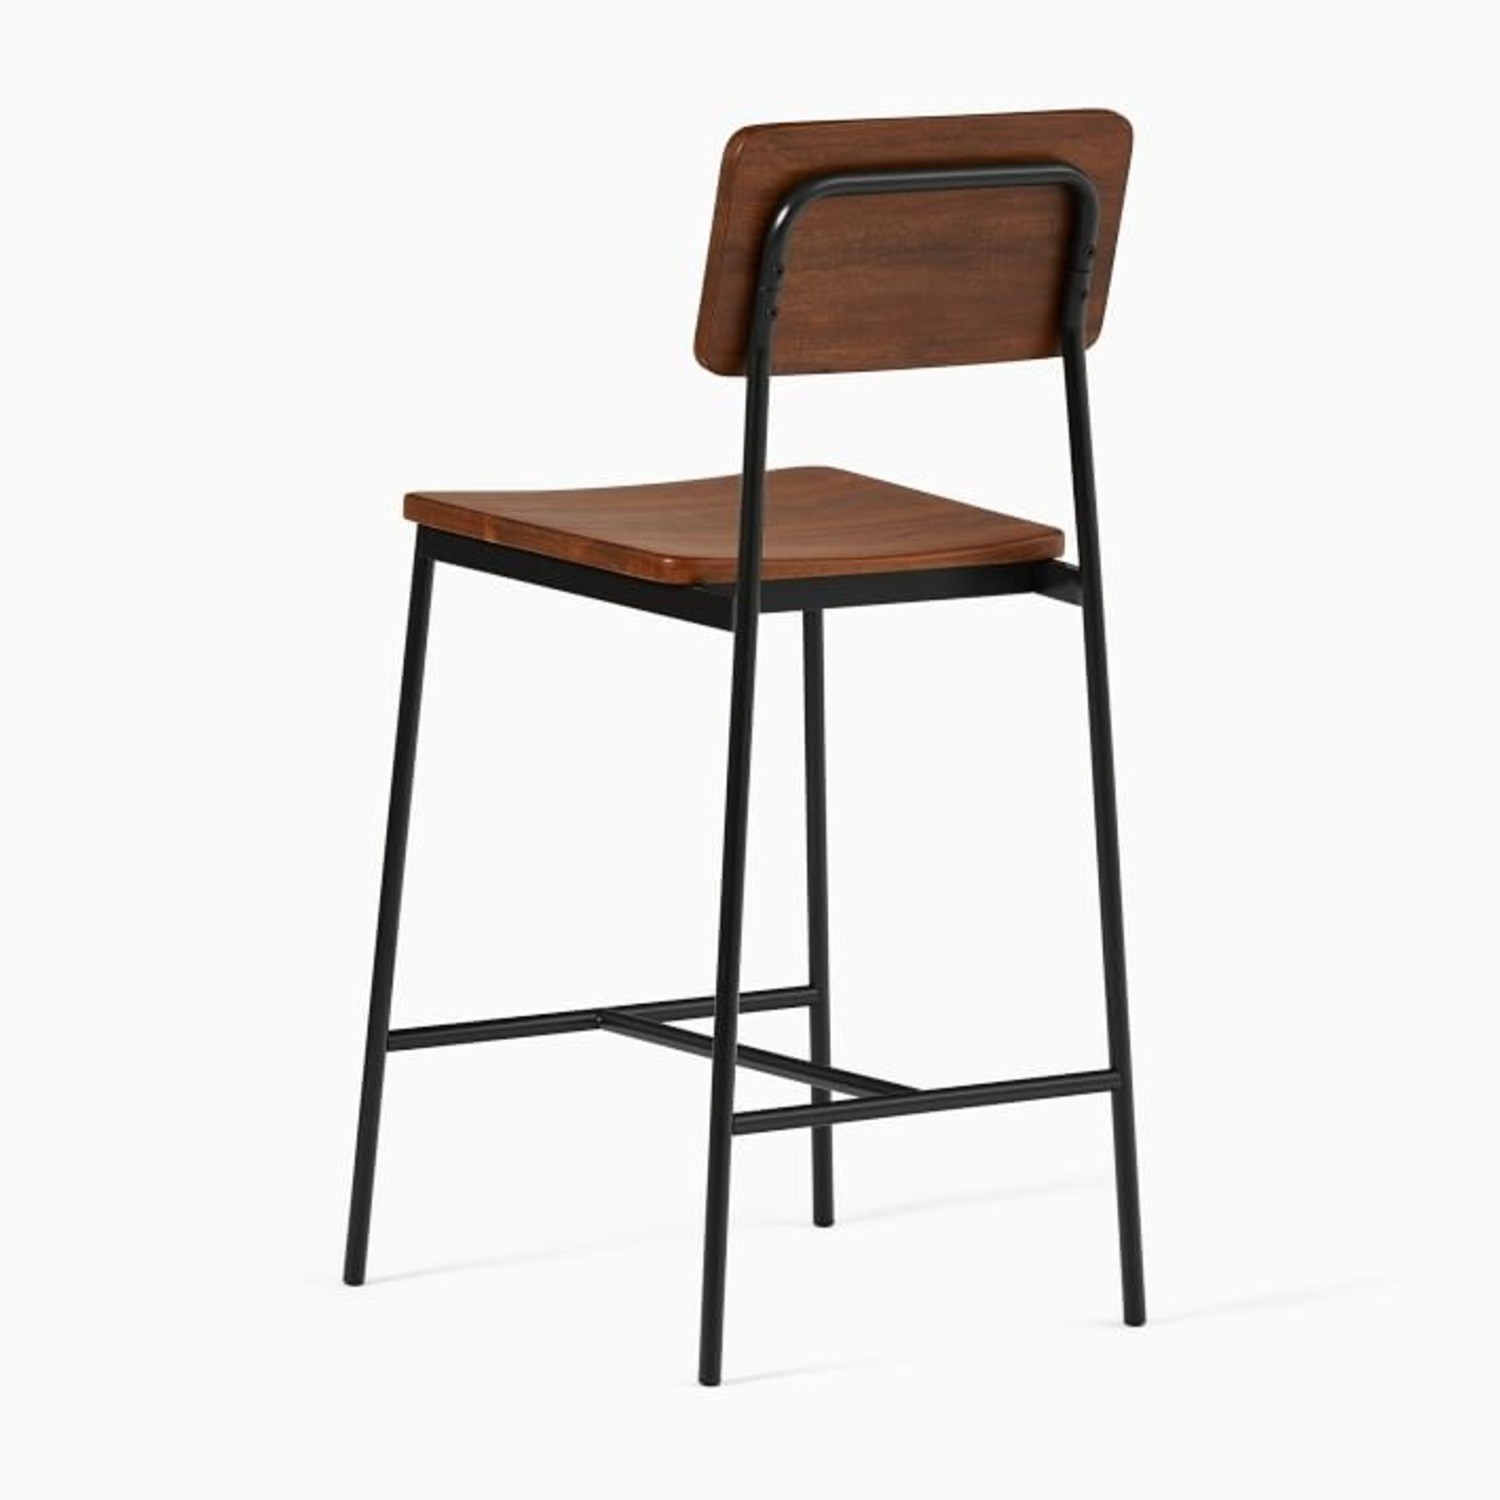 West Elm Augusta Rustic Counter Stool - image-2